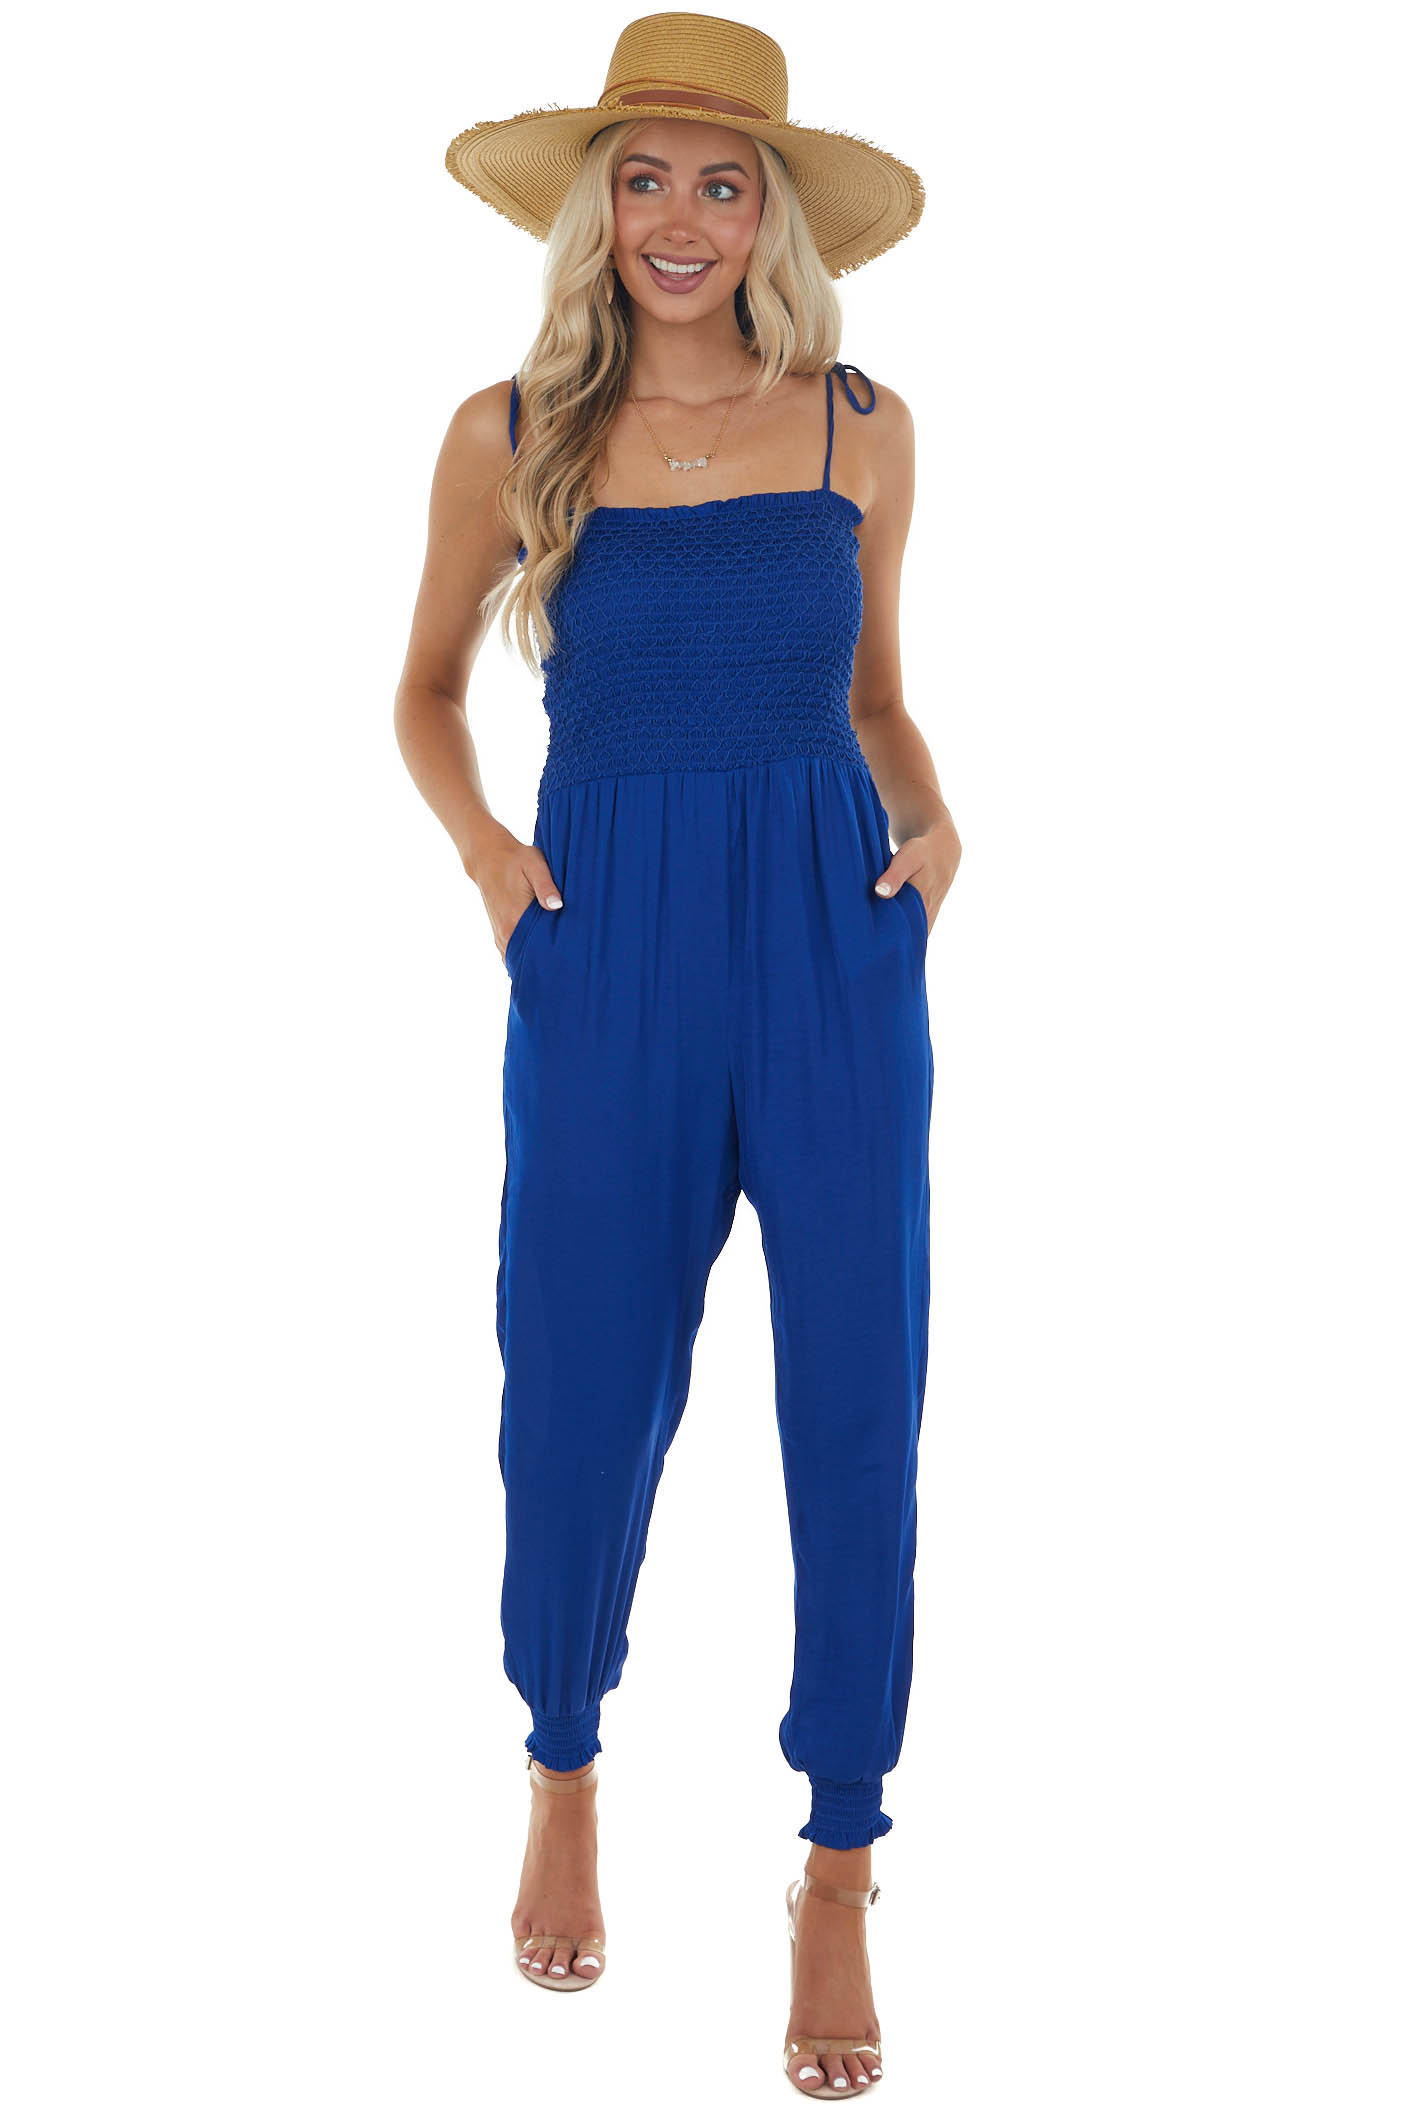 Catalina Blue Smocked Jumpsuit with Tie Straps